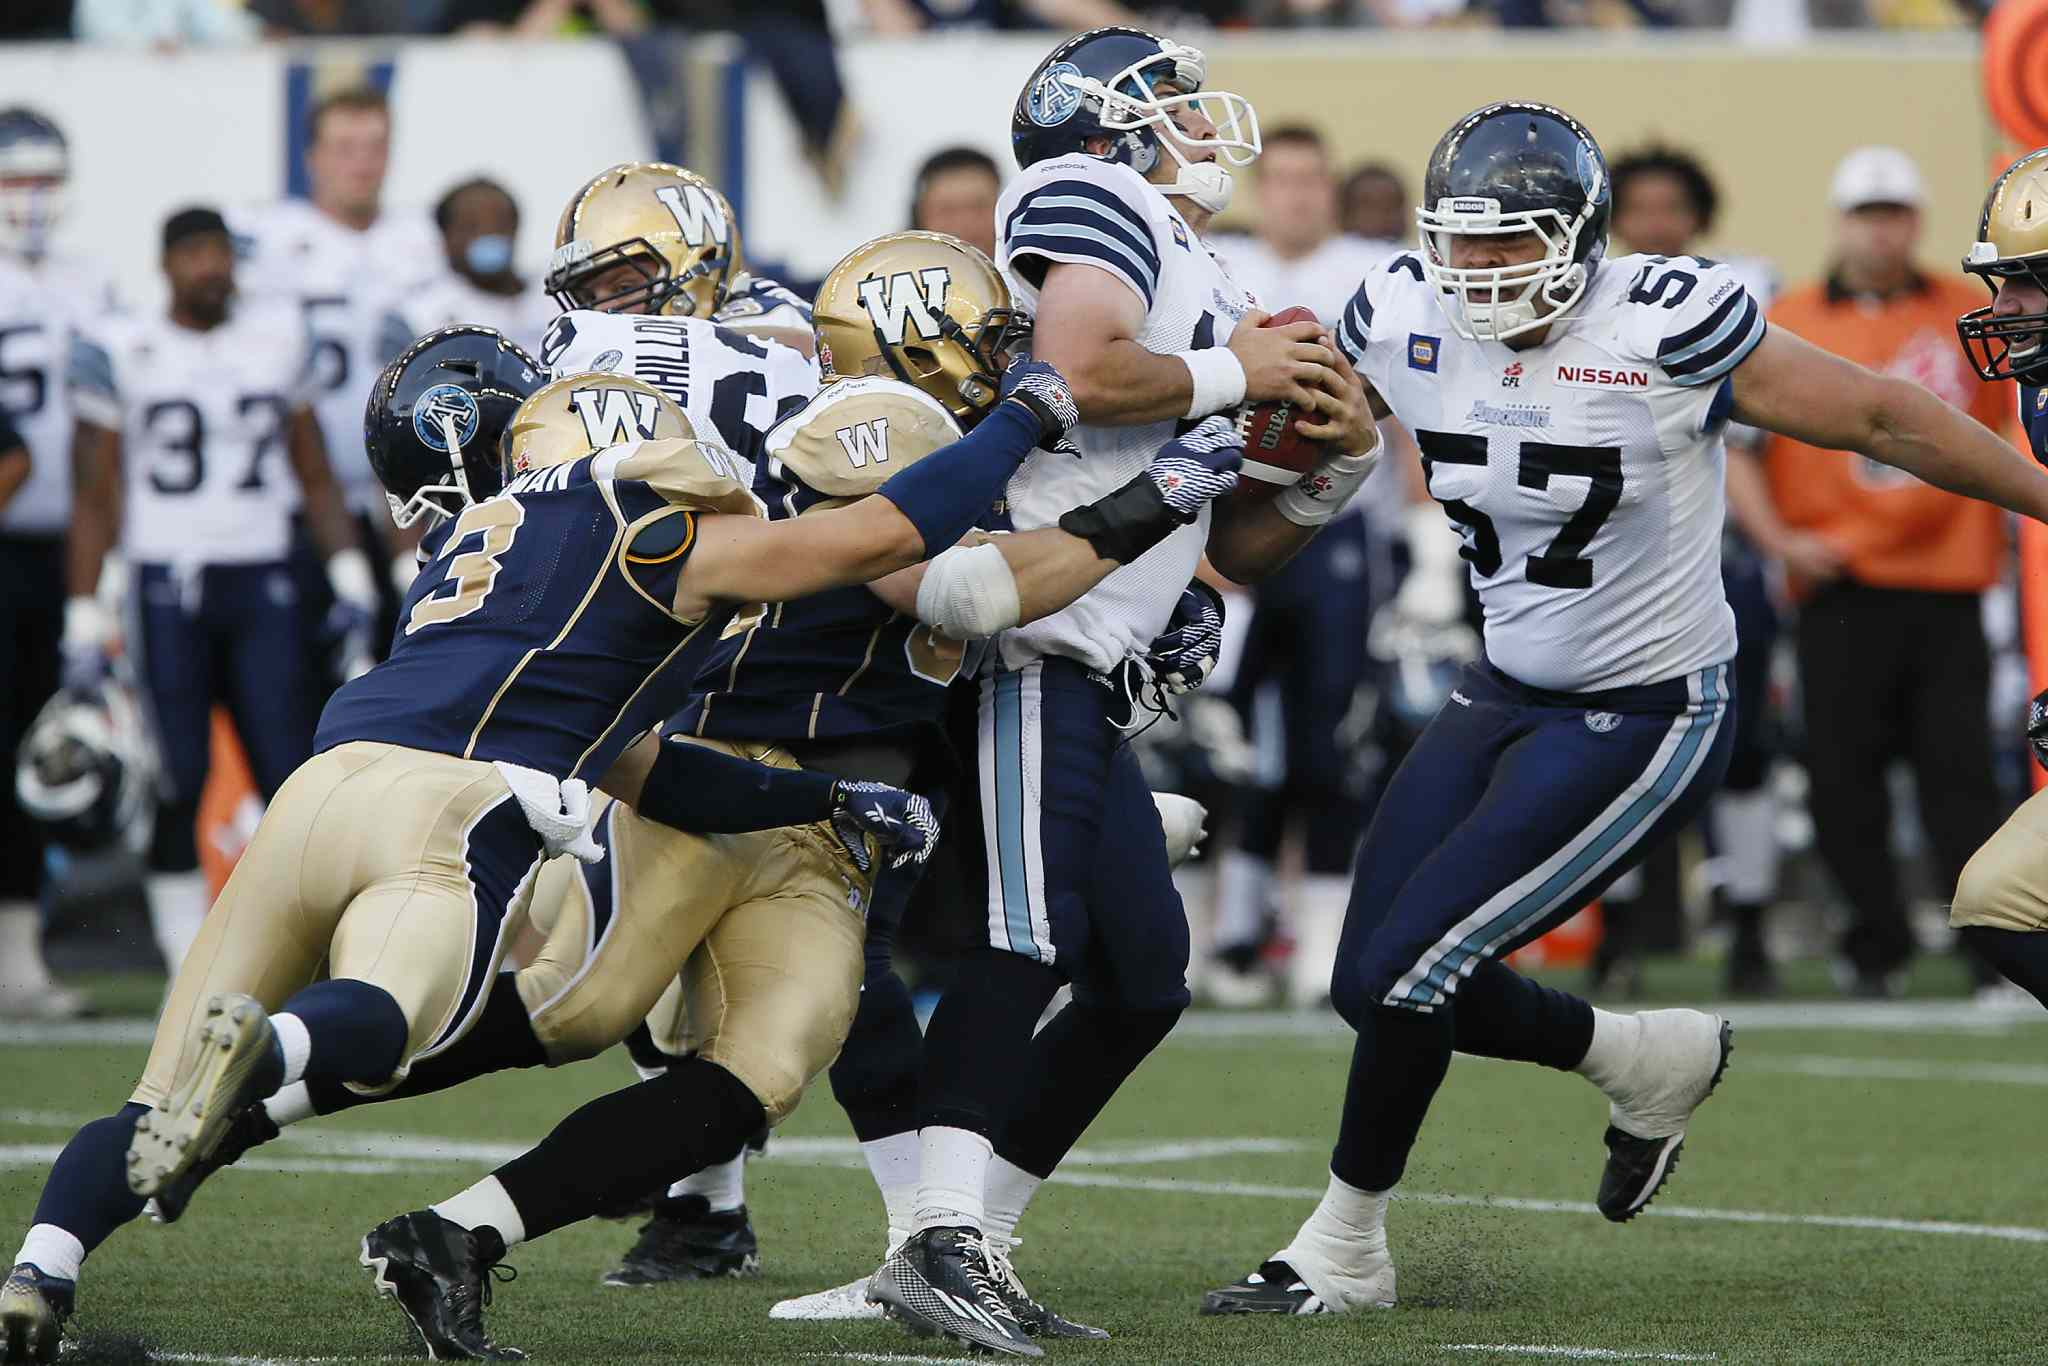 Winnipeg Blue Bombers defensive lineman Greg Peach is the lead tackler as the Bombers defence sacks Toronto Argonauts quarterback Mitchell Gale during the first half of a CFL pre-season game at Investors Group Field in Winnipeg Monday.